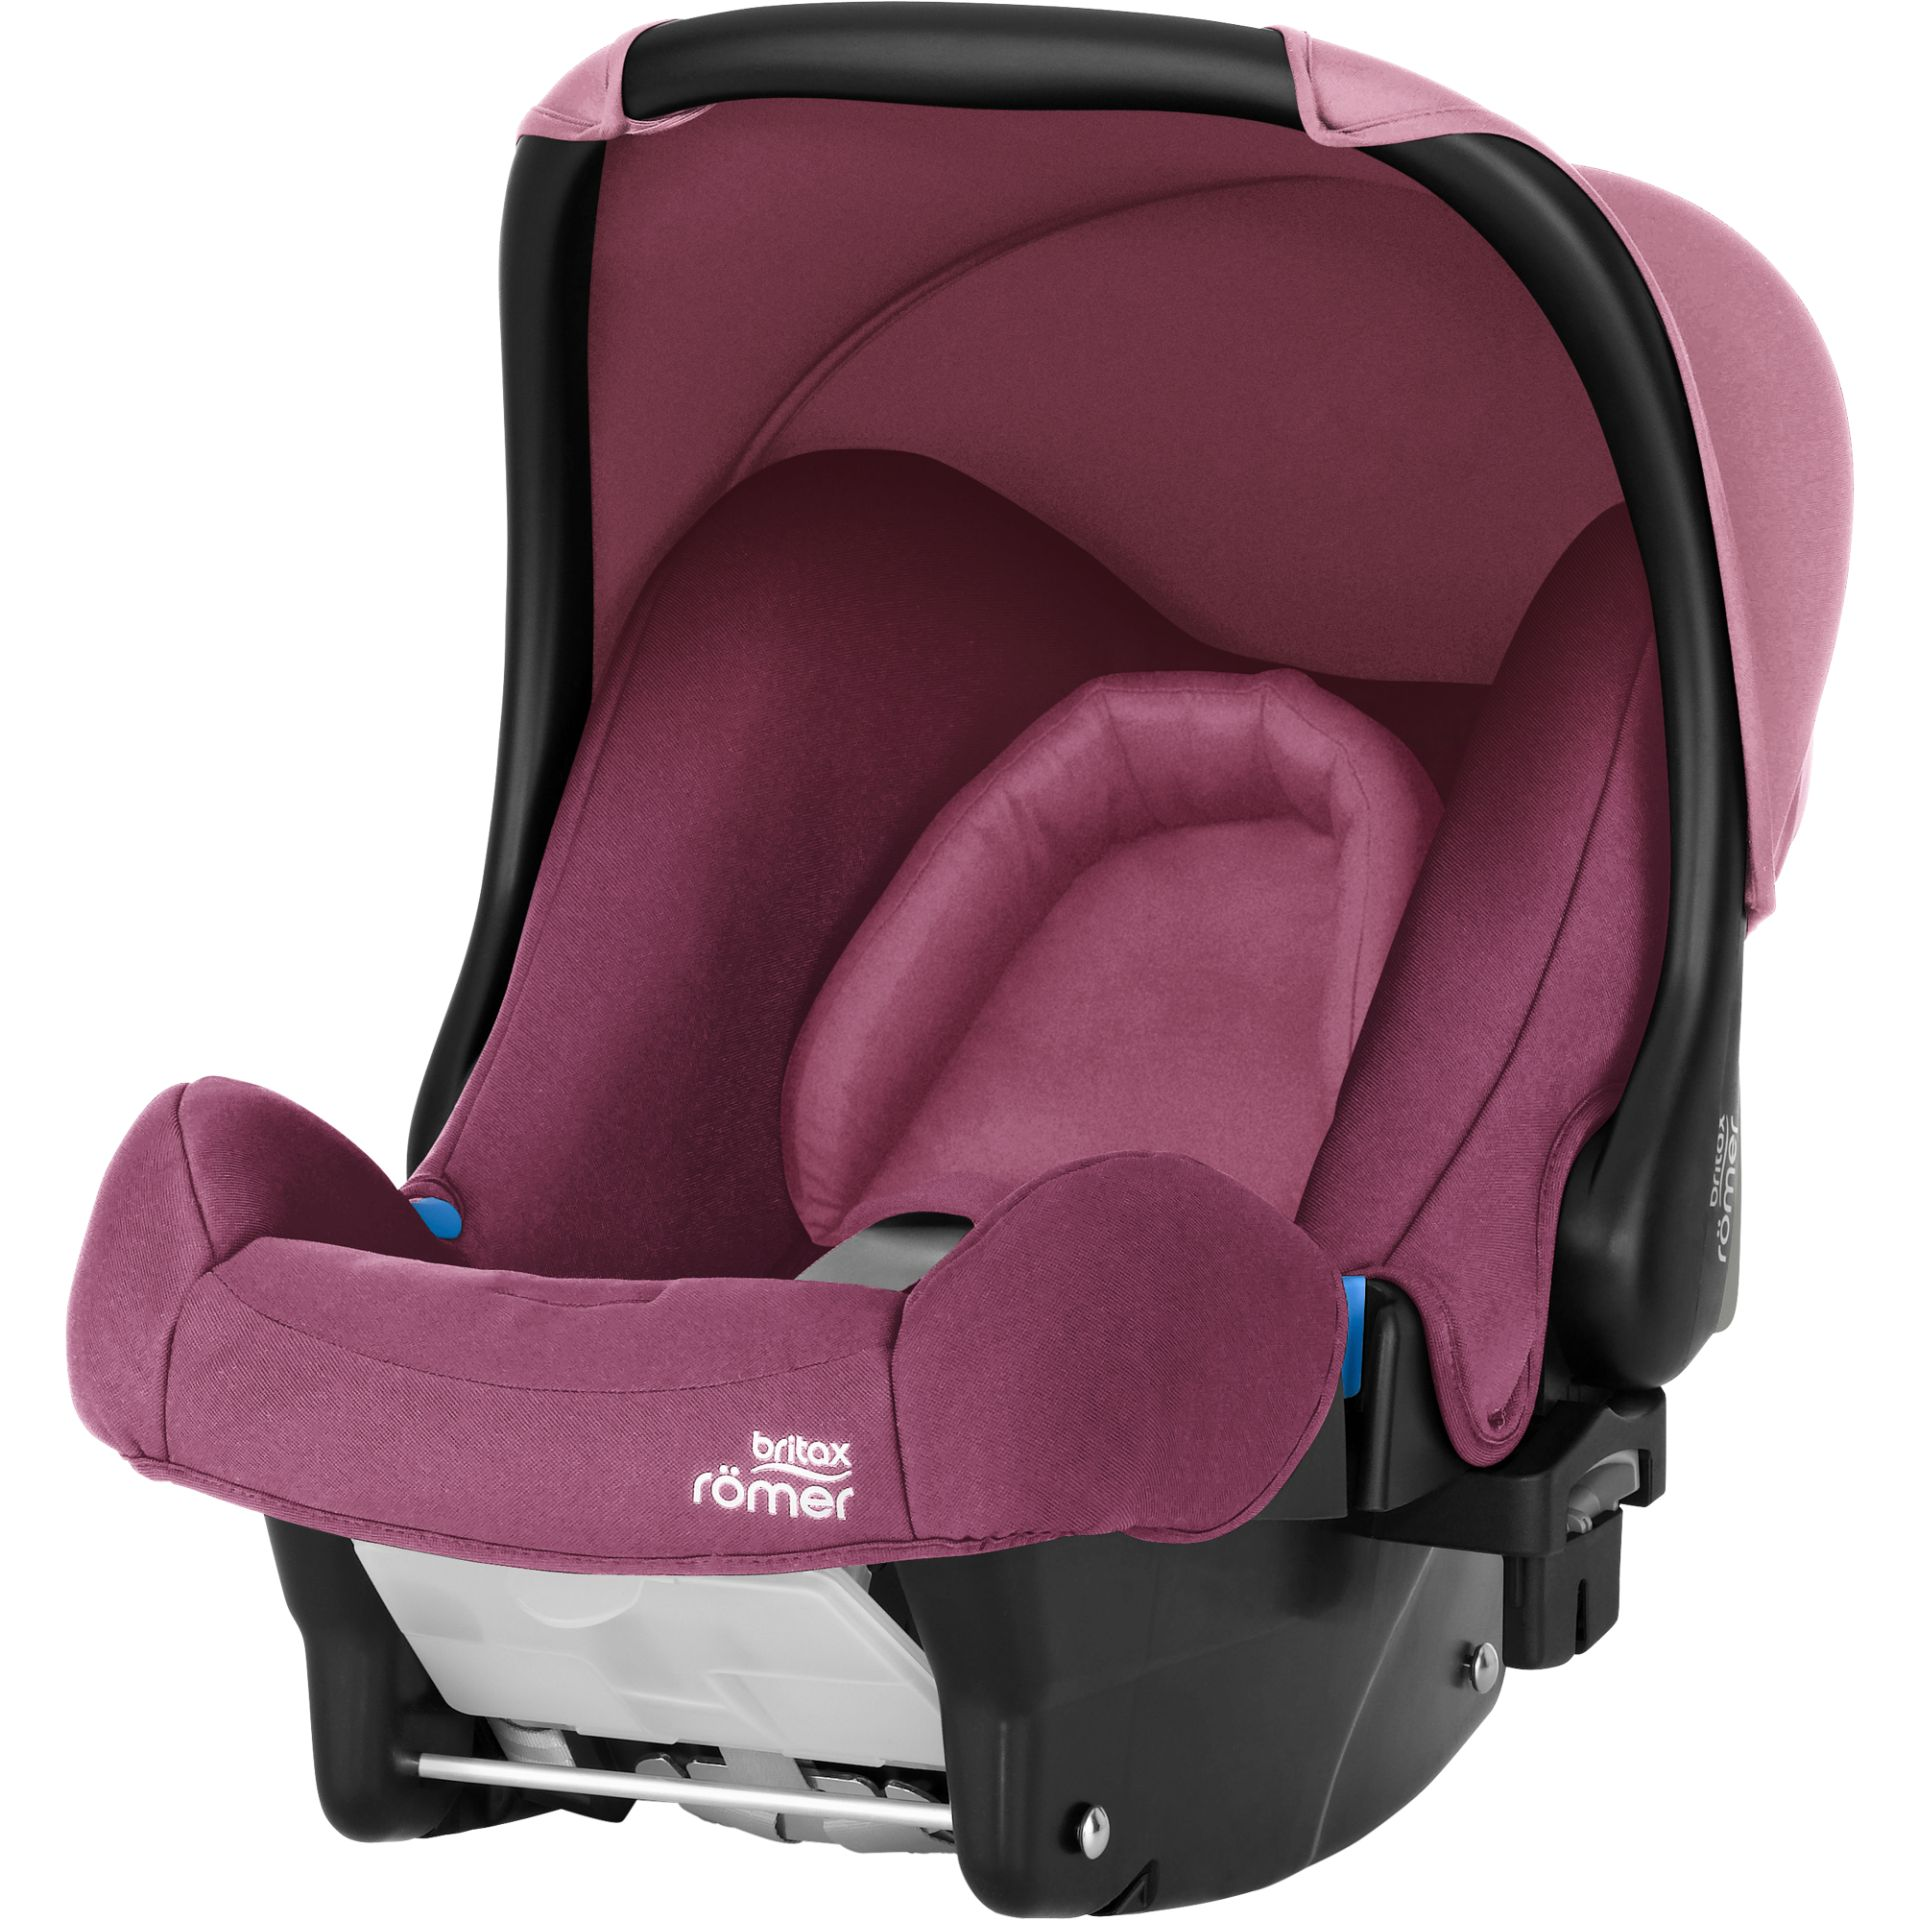 britax r mer babyschale baby safe 2019 wine rose online kaufen bei kidsroom kindersitze. Black Bedroom Furniture Sets. Home Design Ideas